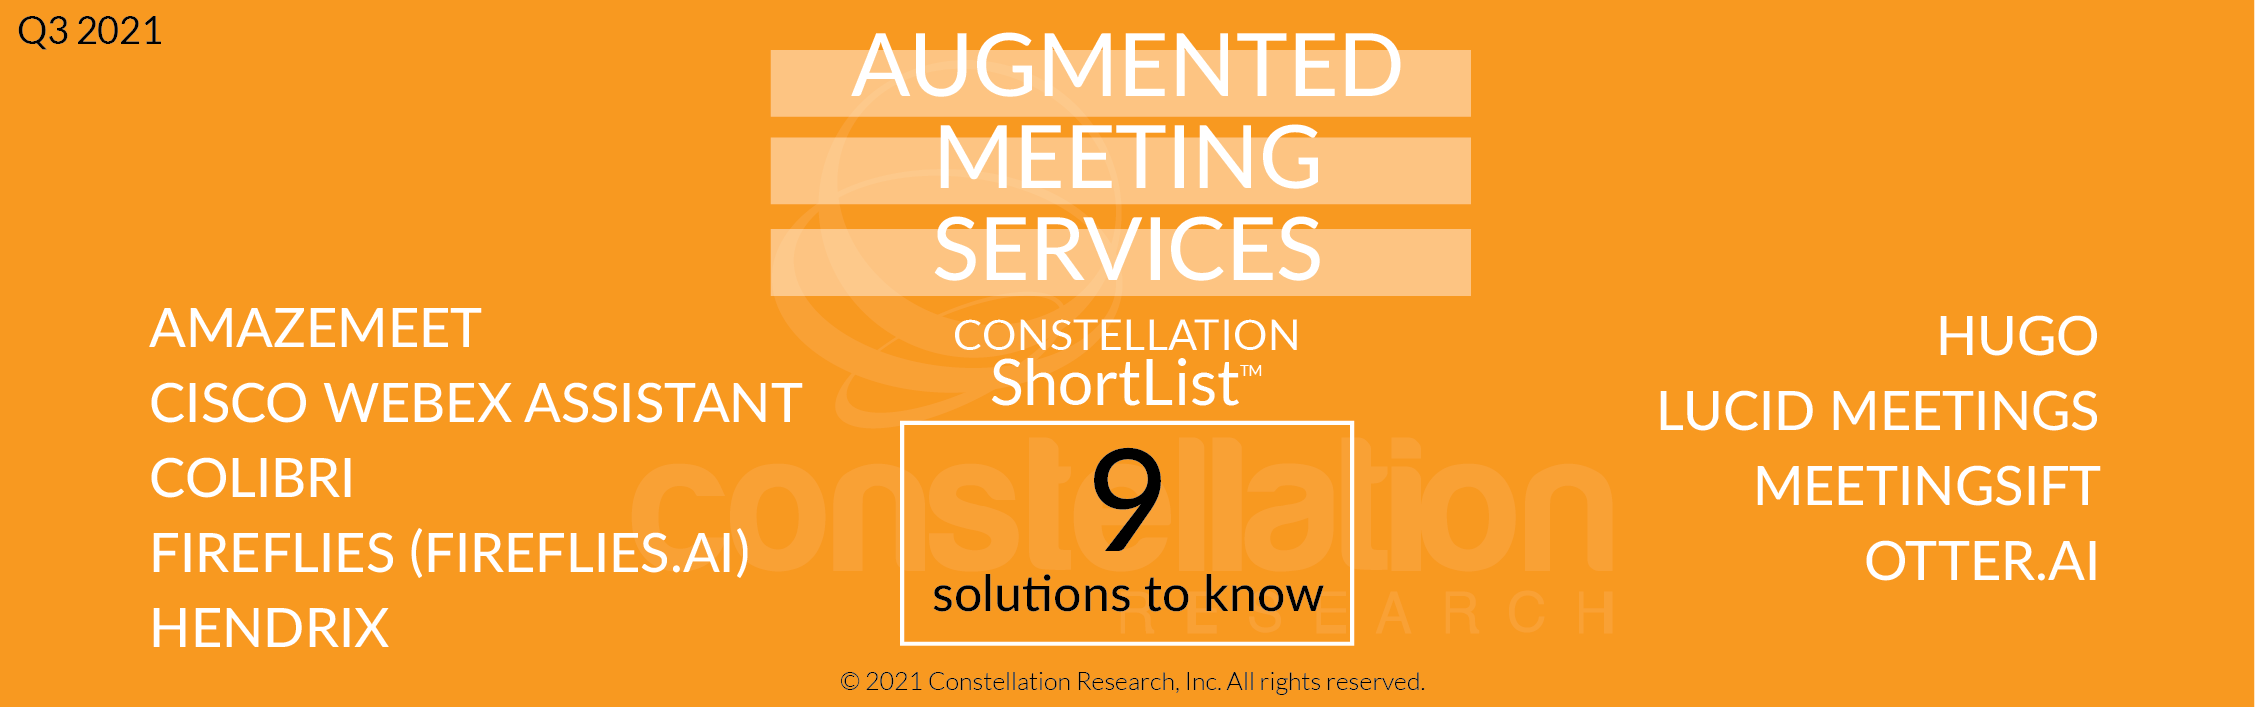 Augmented Meeting Services shortlist-image Q32021-01